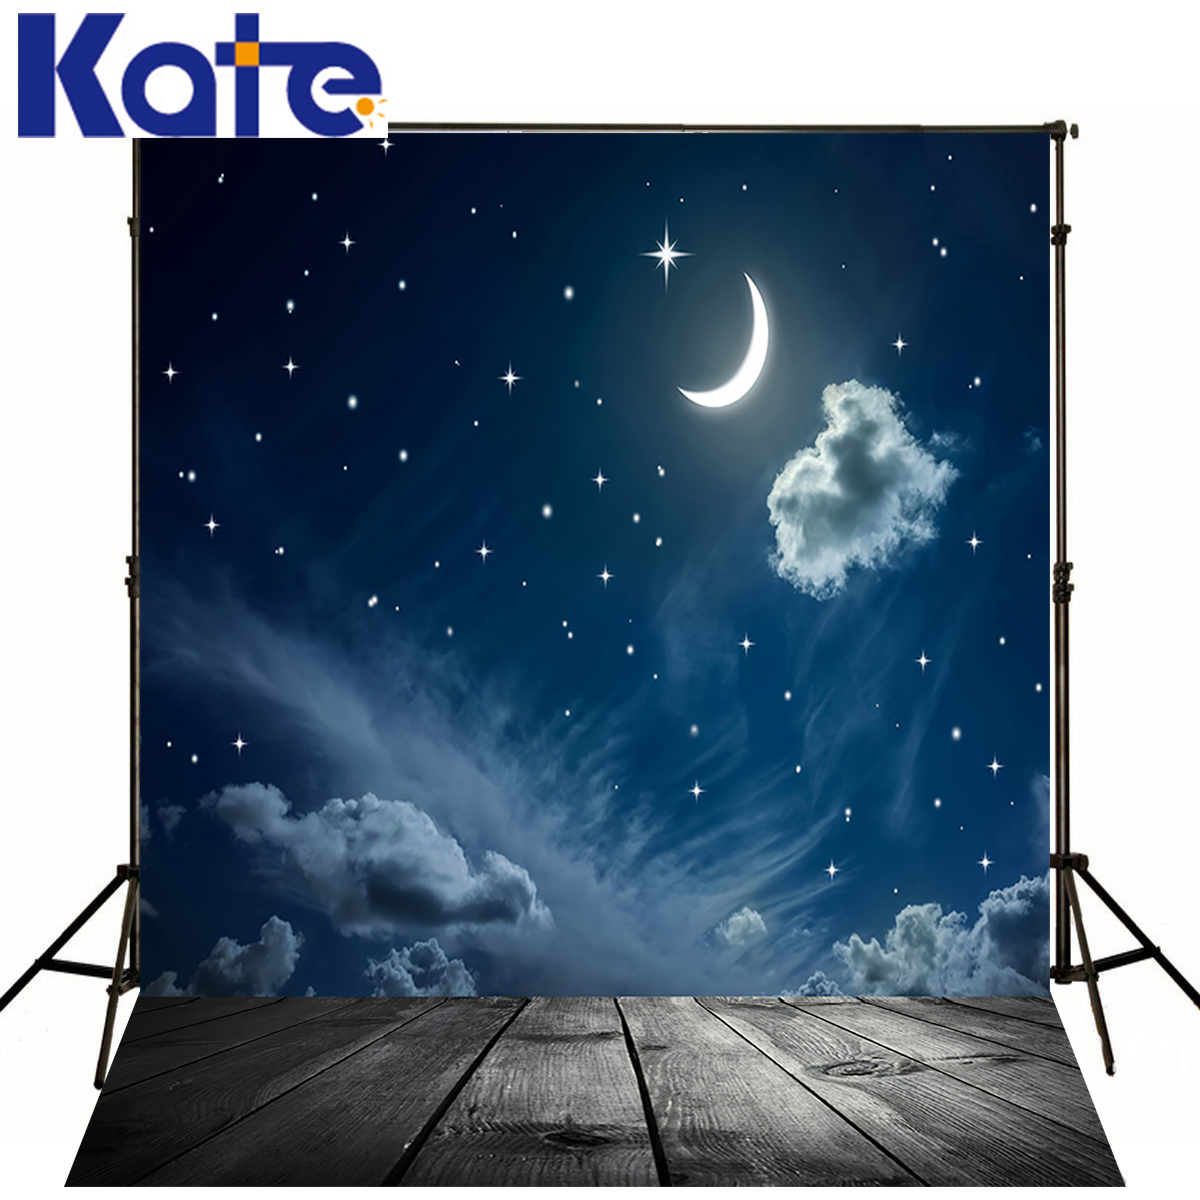 Kate Newborn Baby Photography Backdrops Wood Floor Fundo Fotografico Madeira Starry Sky Clound Photography Background Studio kate newborn baby backgrounds fotografia light wood wall fundo fotografico madeira old wooden floor backdrops for photo studio